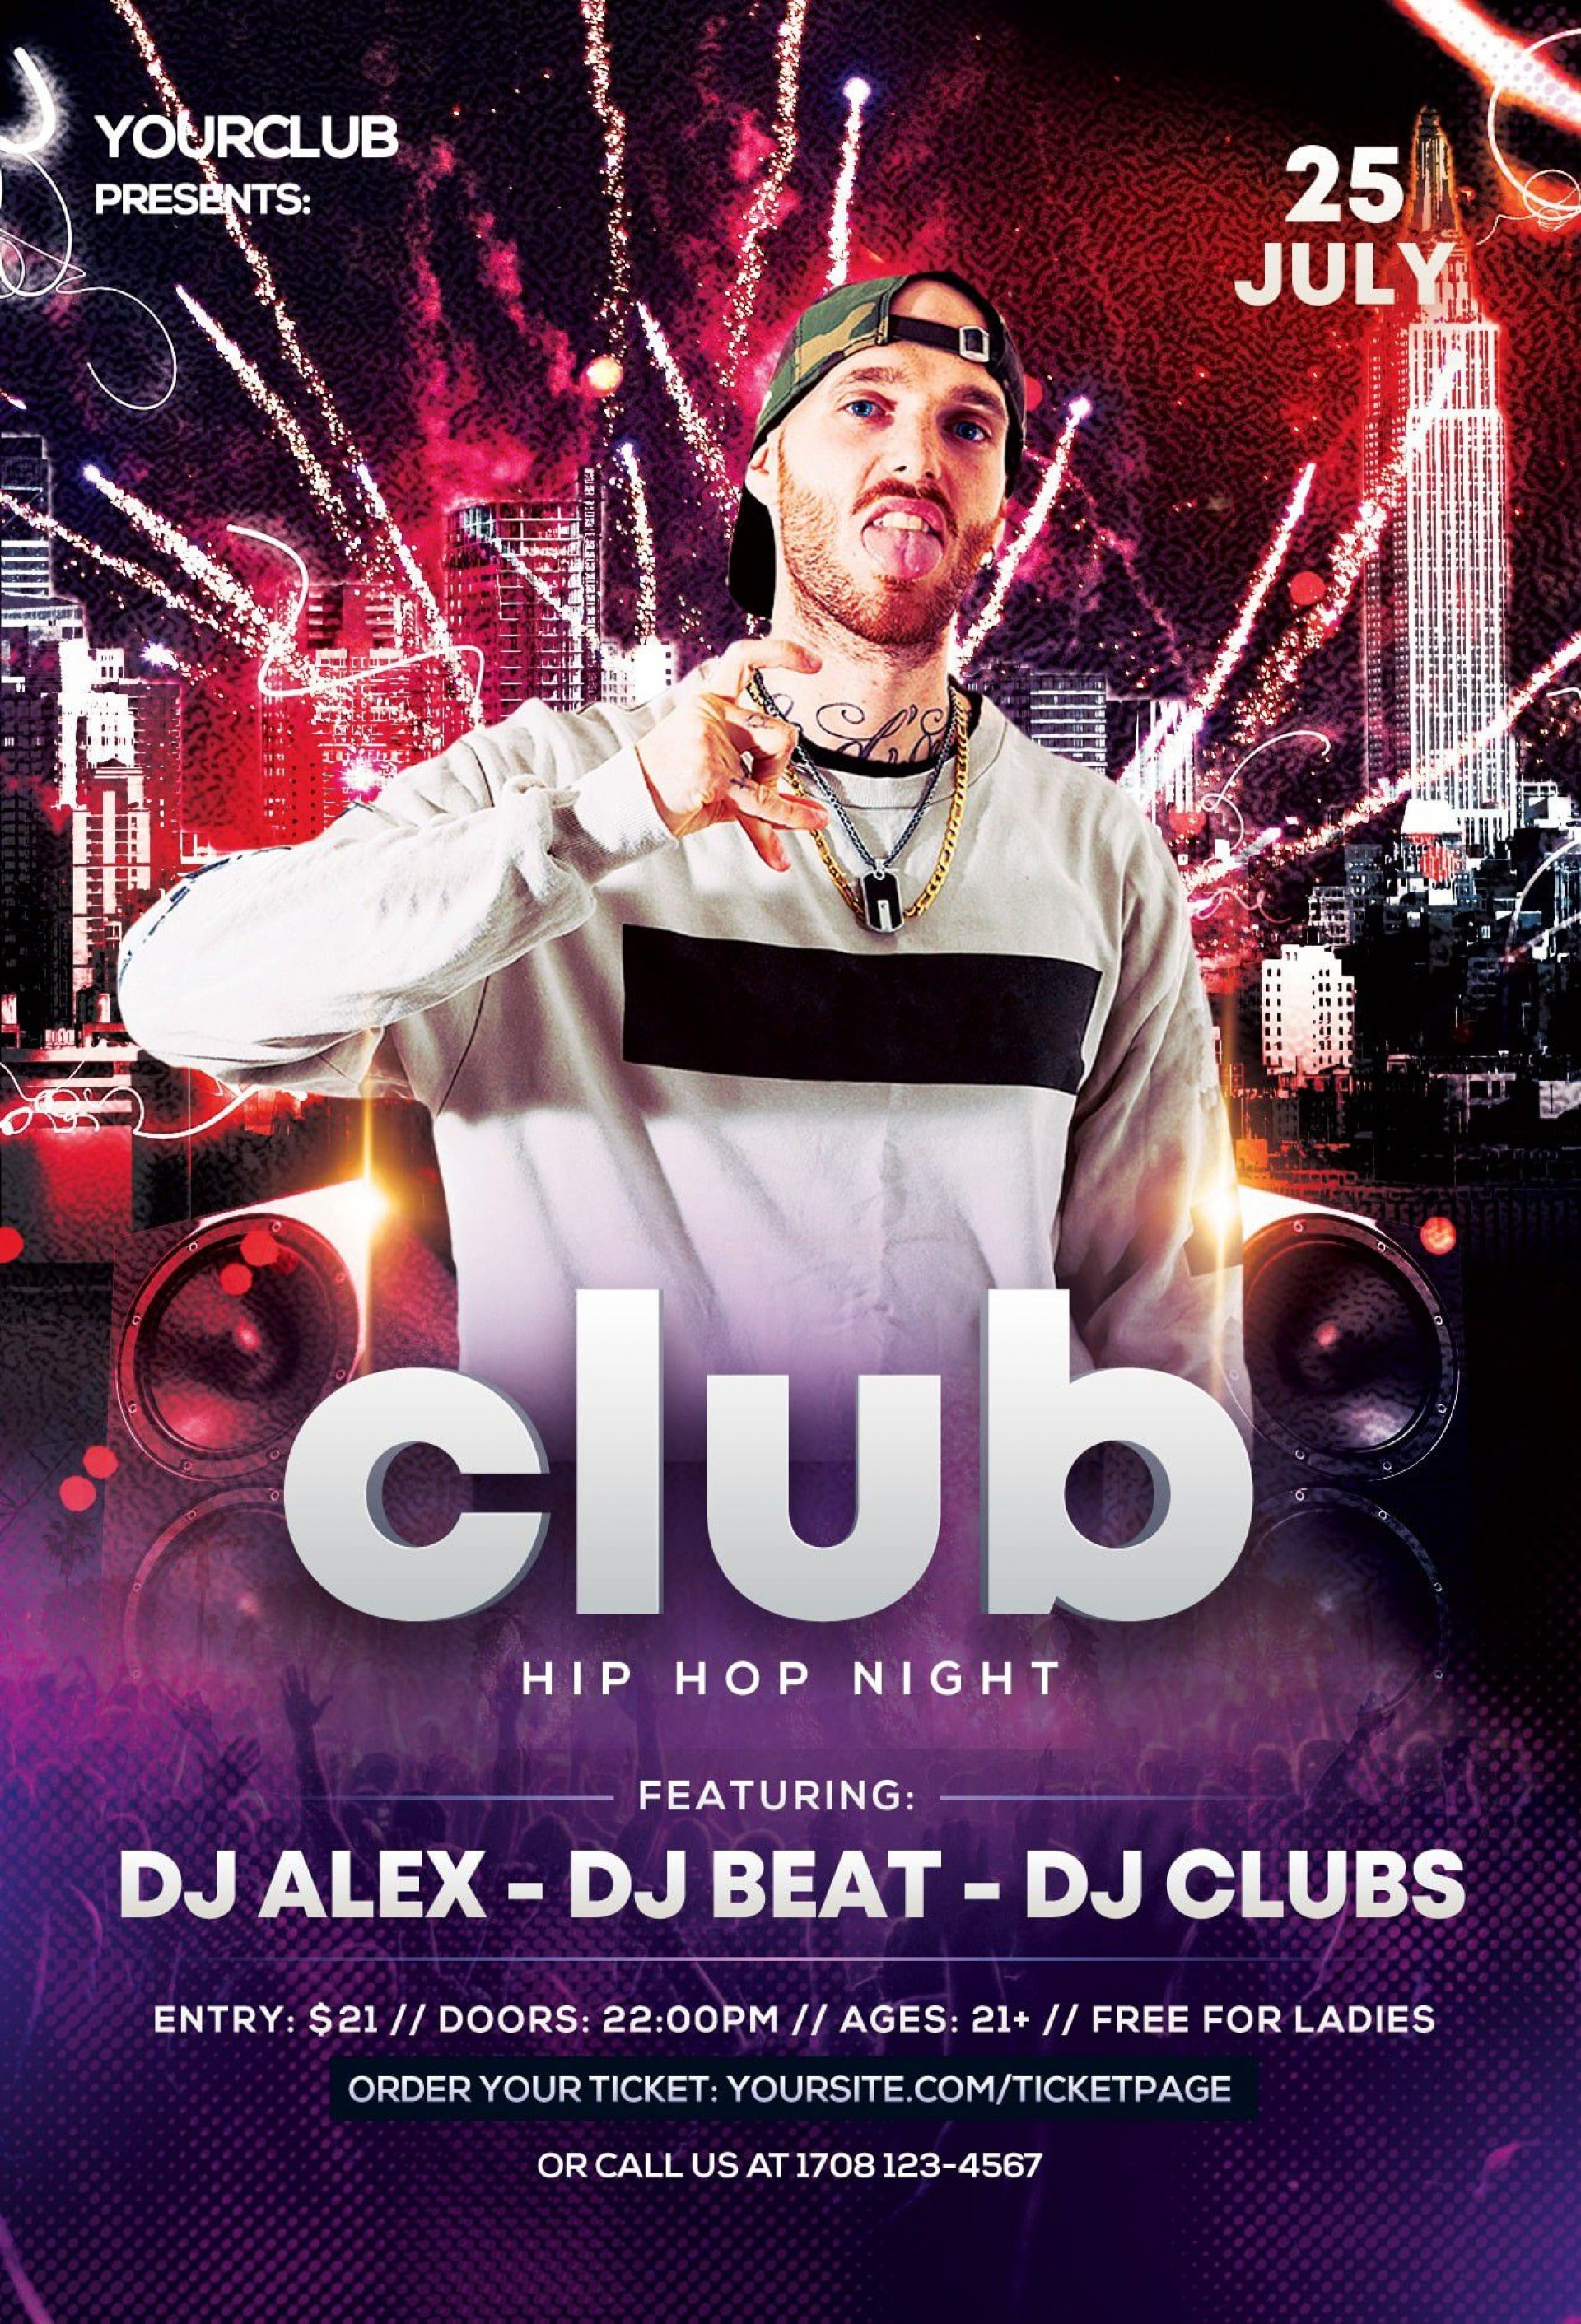 001 Marvelou Hip Hop Flyer Template Highest Clarity  Templates Hip-hop Party Free Download1920